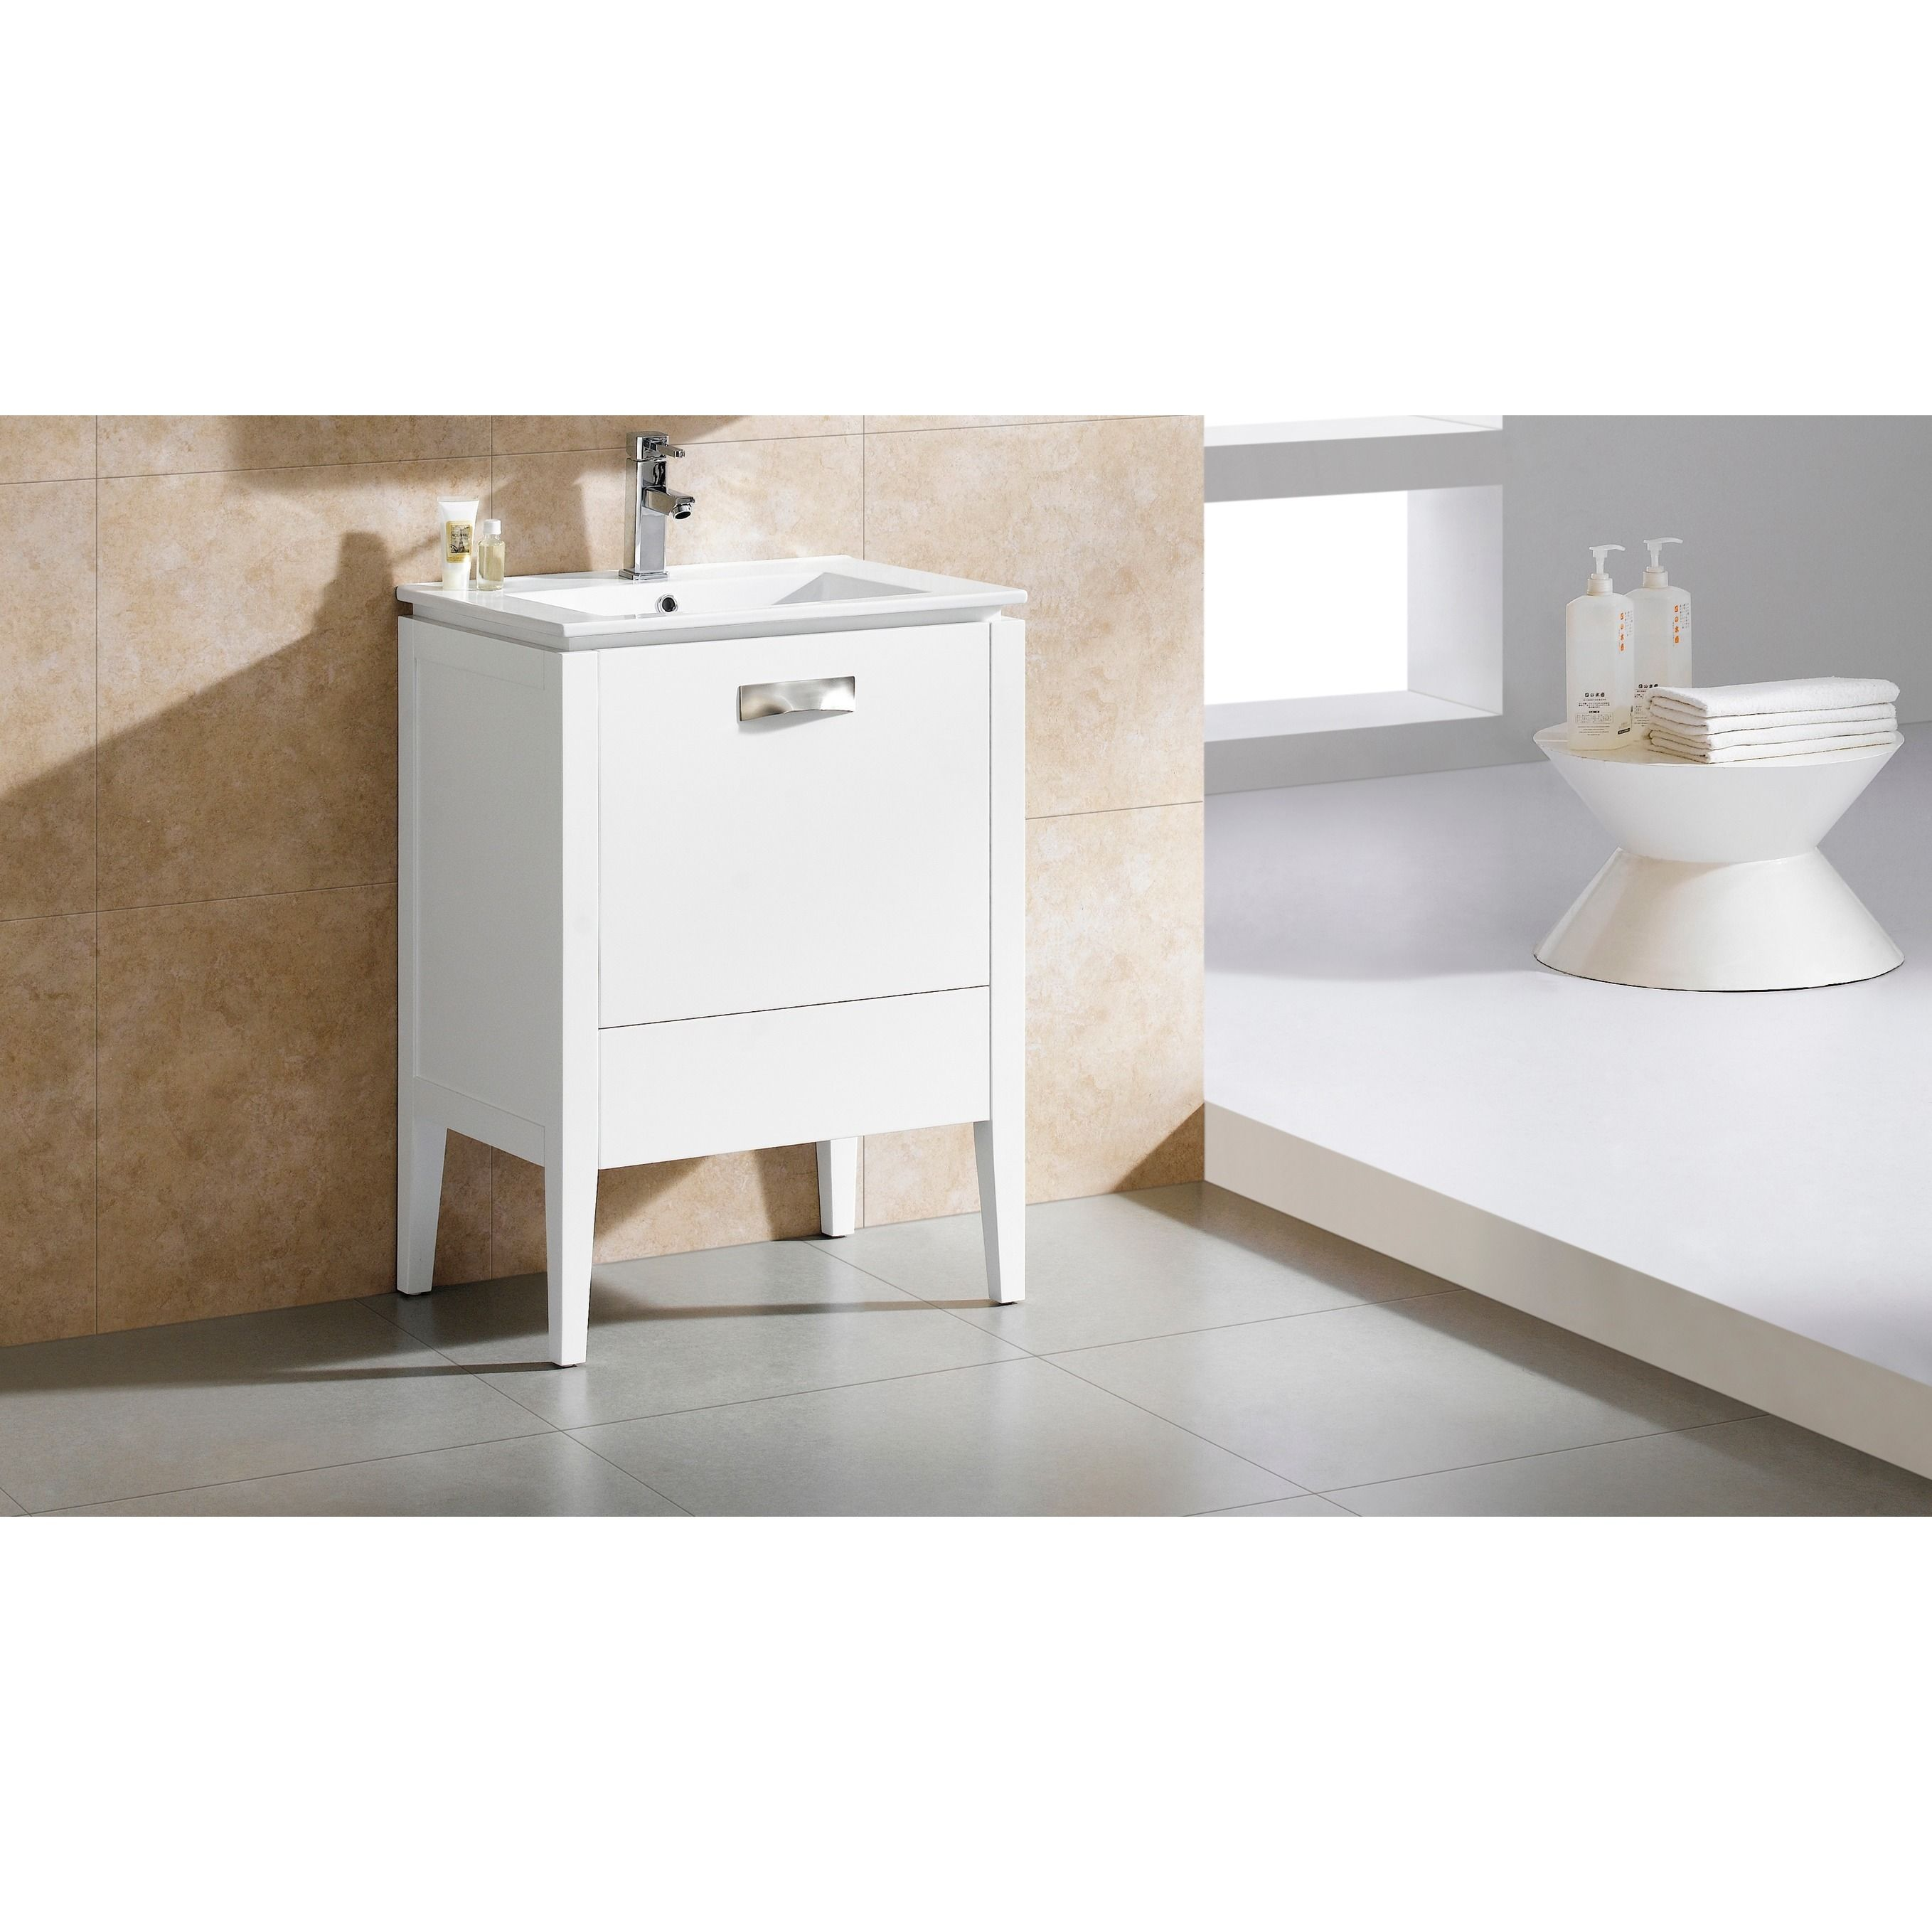 Fine Fixtures Manchester 20 Inch Vanity with Vitreous China Sink